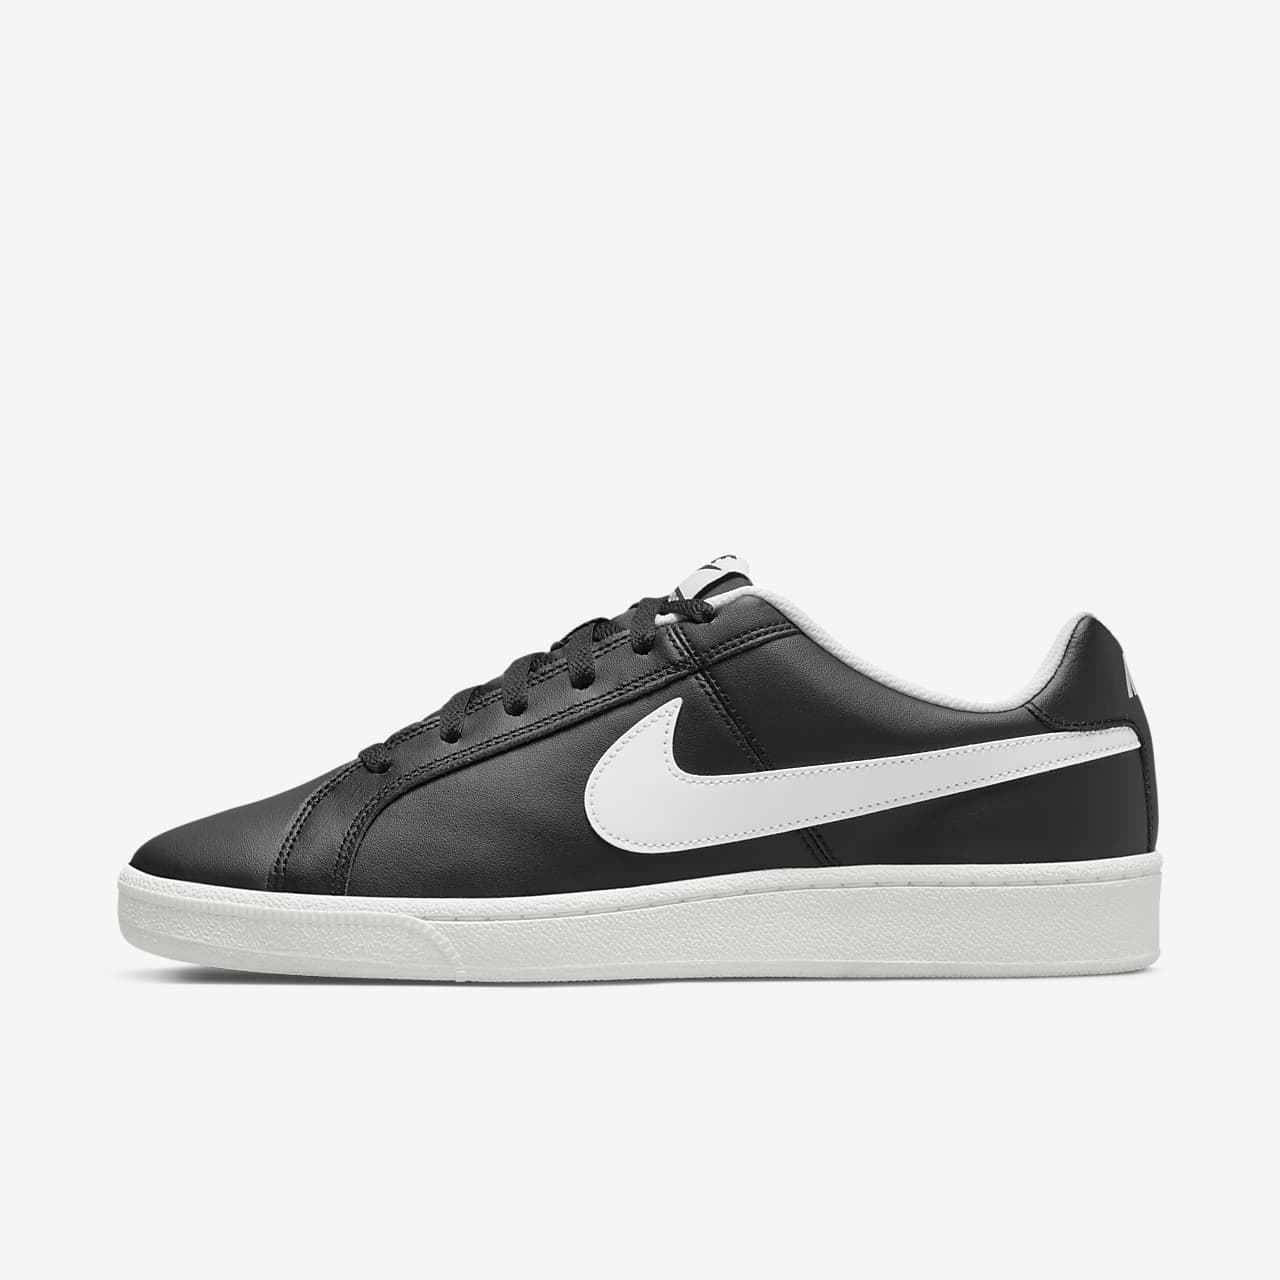 bcdaa2a272a Chaussure Nike Court Royale pour Homme. Nike.com CA